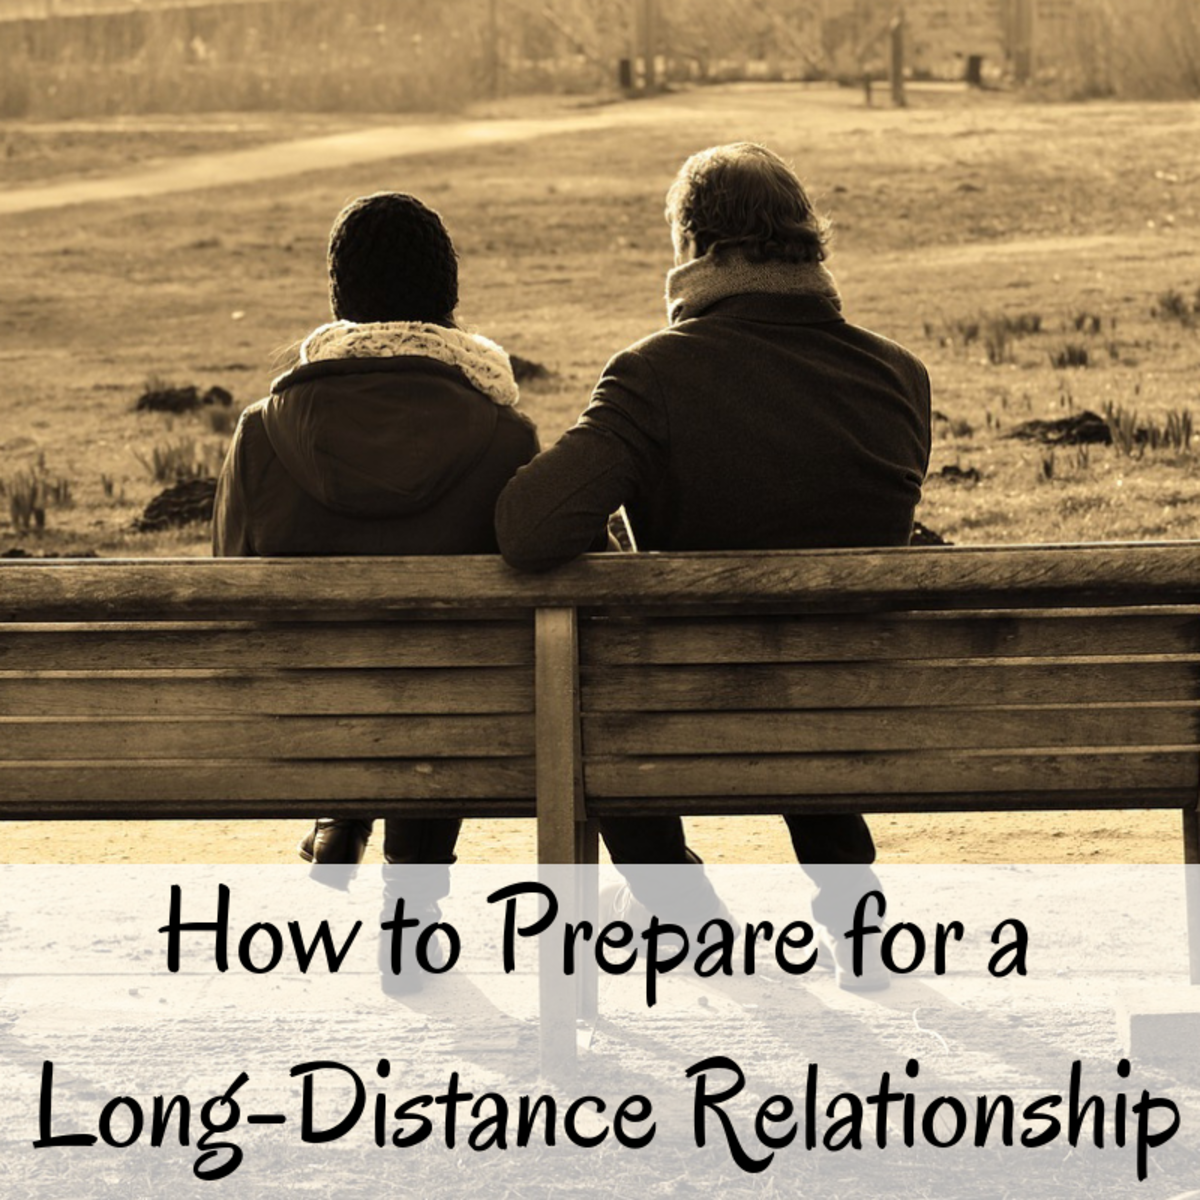 Before your relationship goes long-distance, it's important for you and your partner to be both mentally and emotionally prepared.